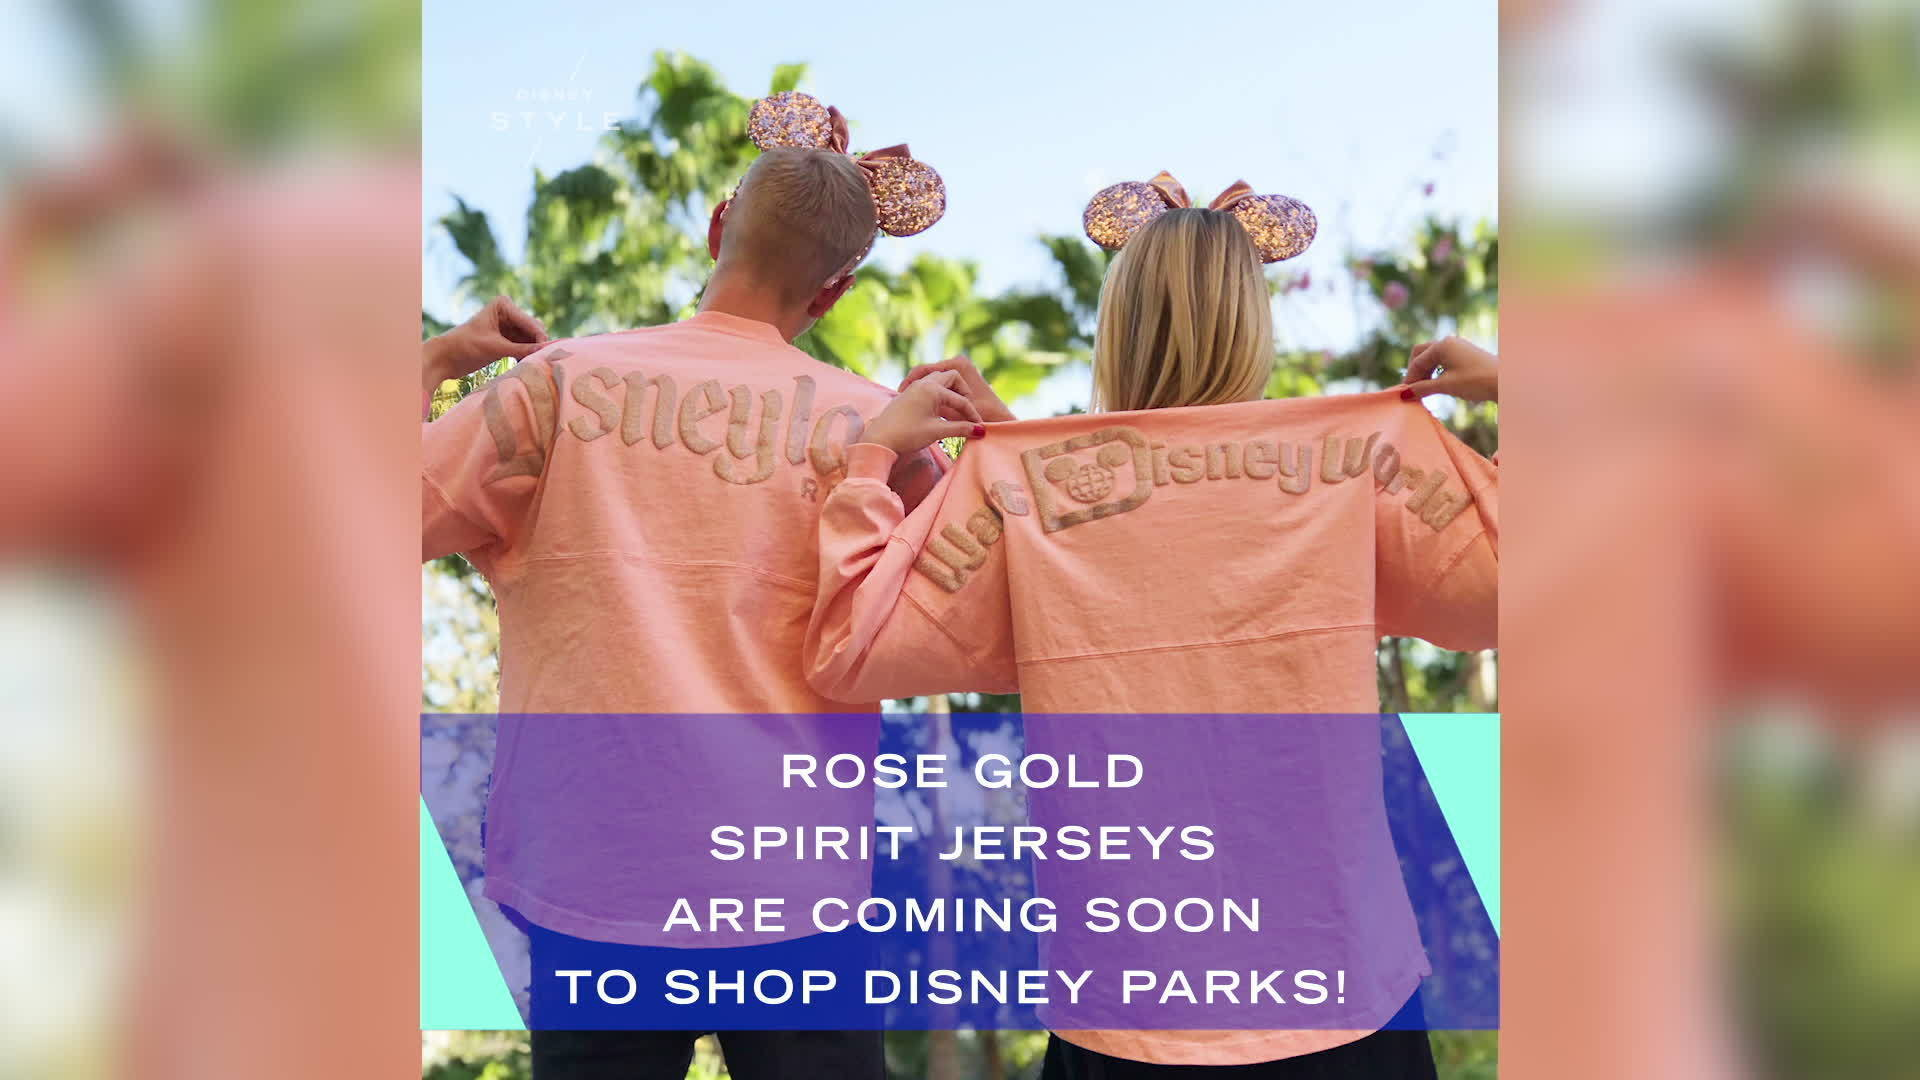 Rose Gold Spirit Jerseys Are Coming Soon to Disney Parks